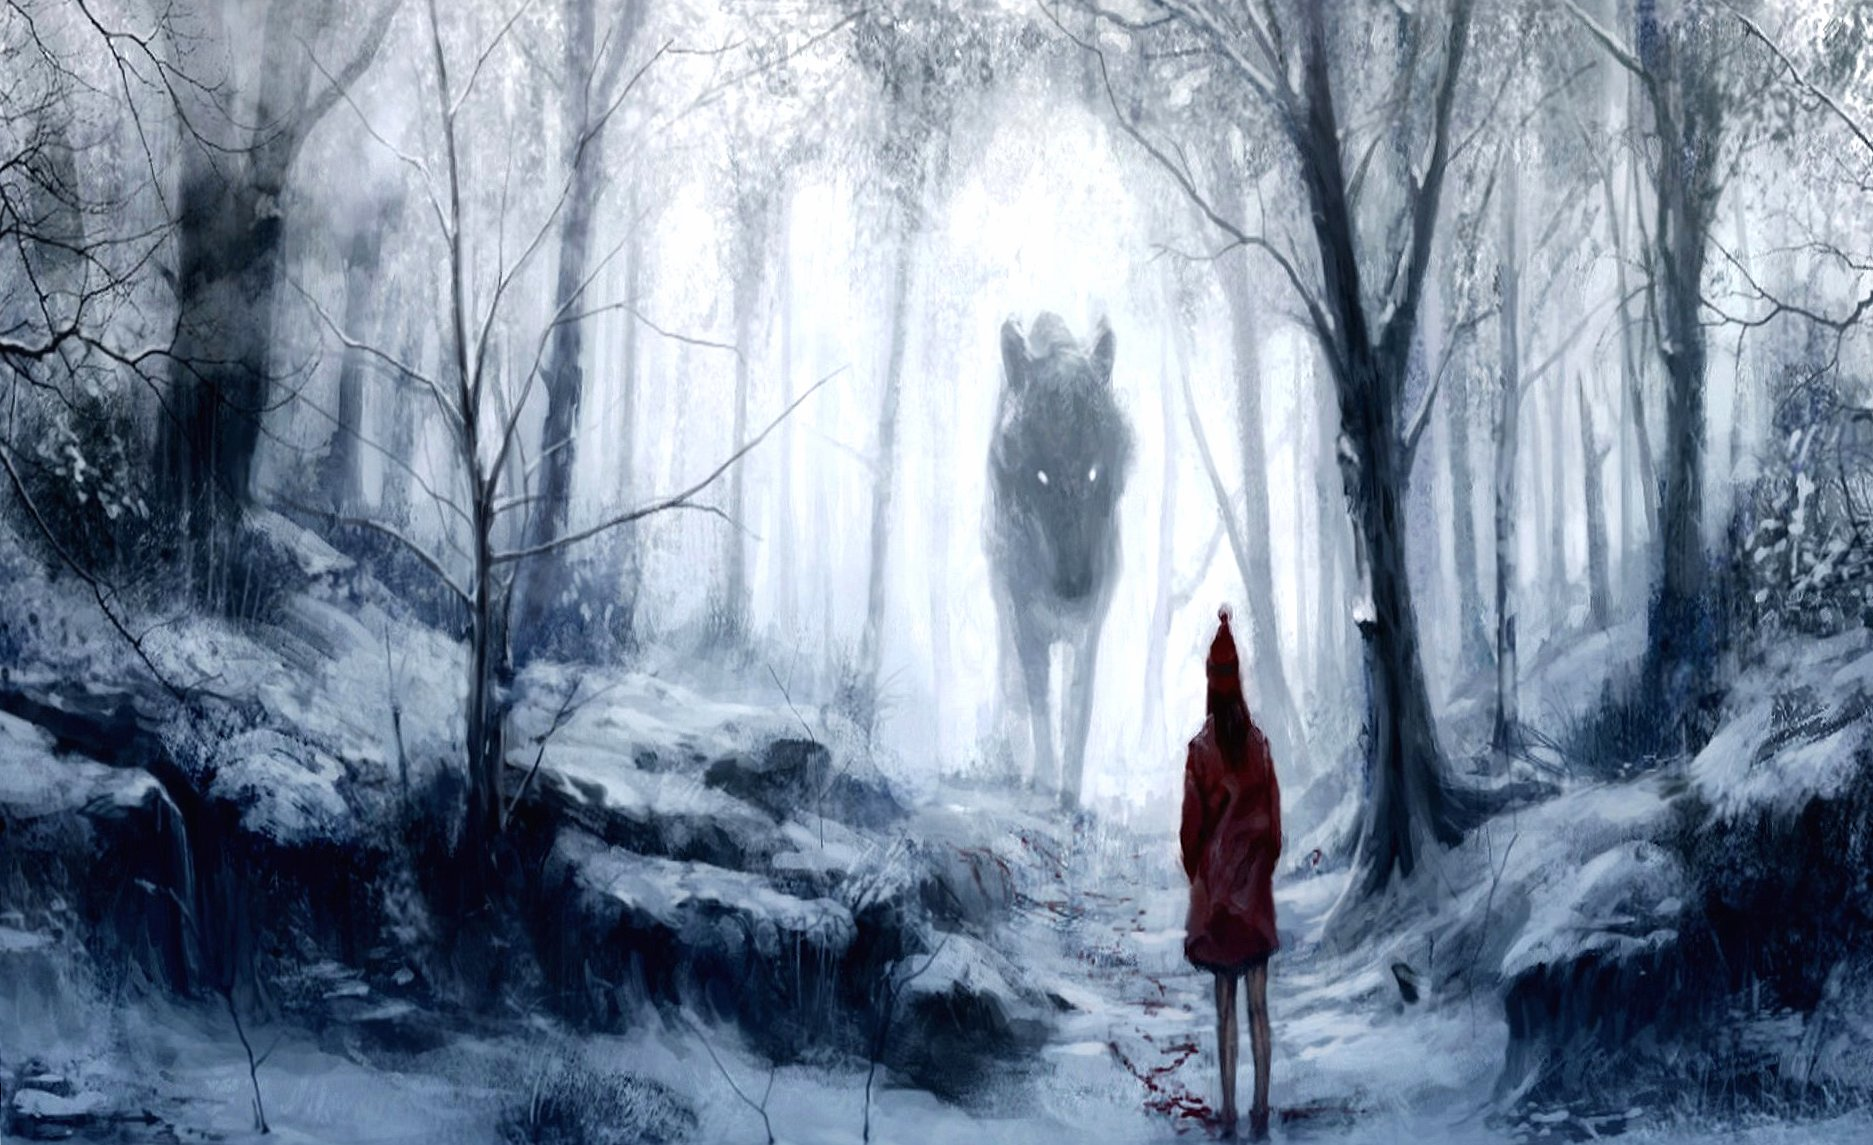 She and wolf fantasy wallpapers HD quality